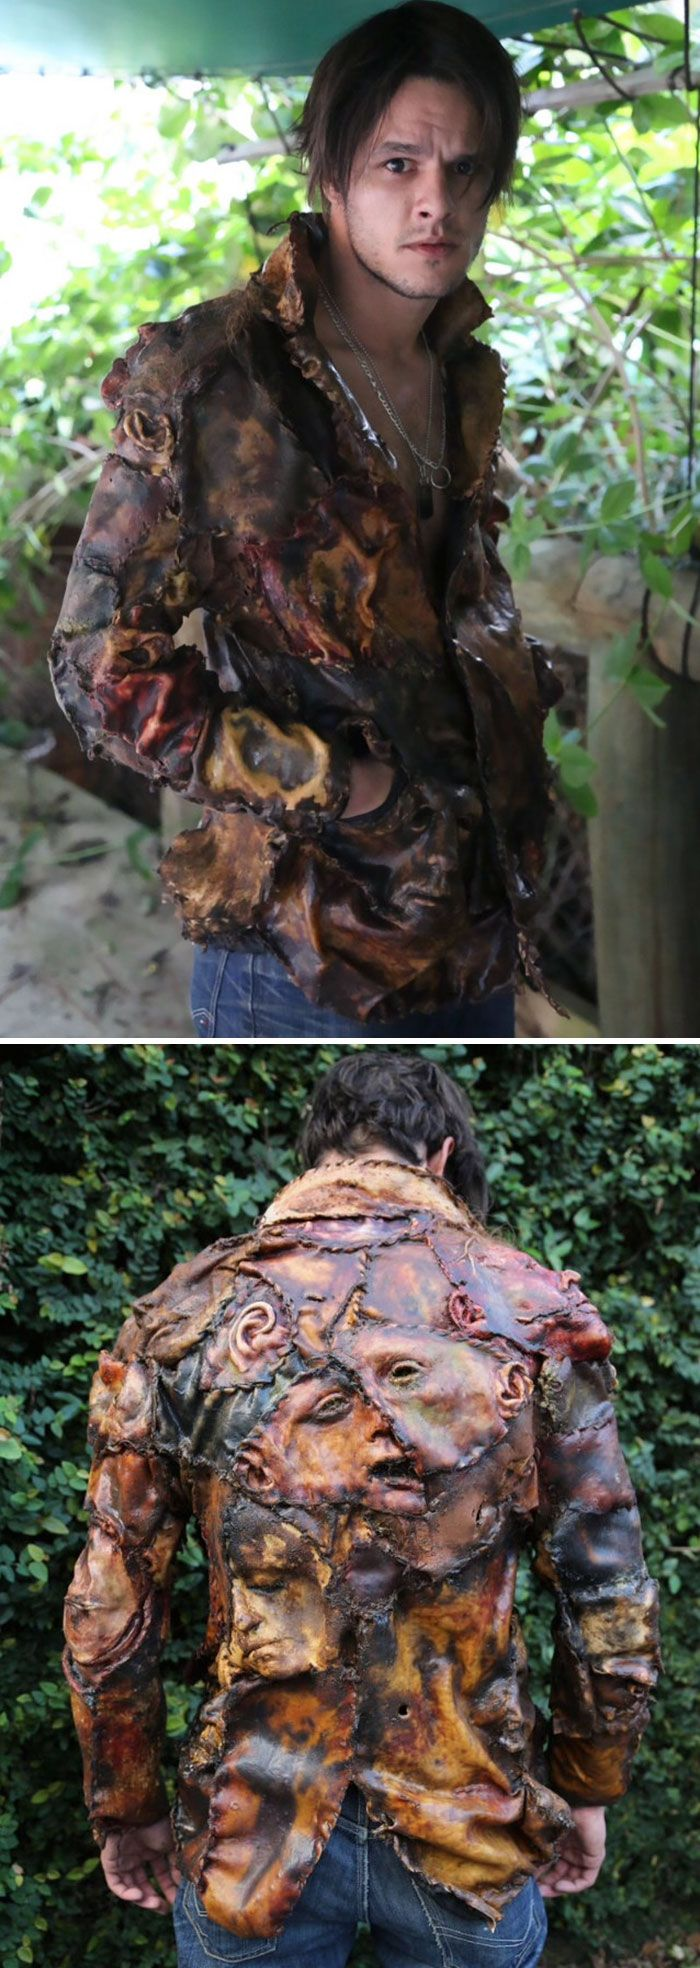 """Wear this """"jacket of souls"""" with classic Freddy gear for possibly the best, creepiest Freddy Kruger costume ever! http://www.costumebliss.com/costume_888434.html"""